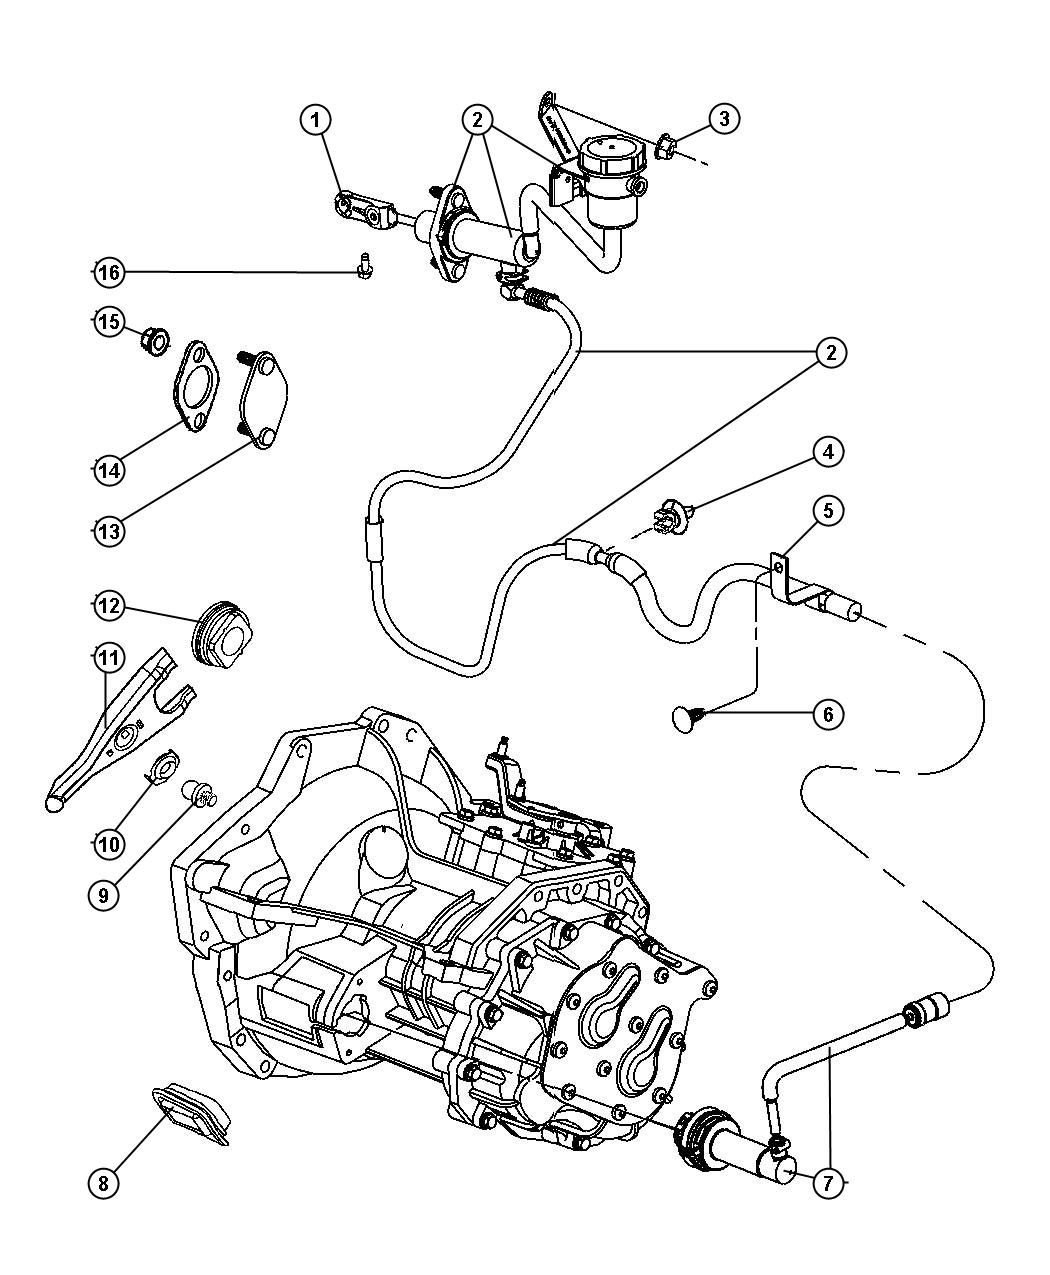 2000 mercury mountaineer parts diagrams